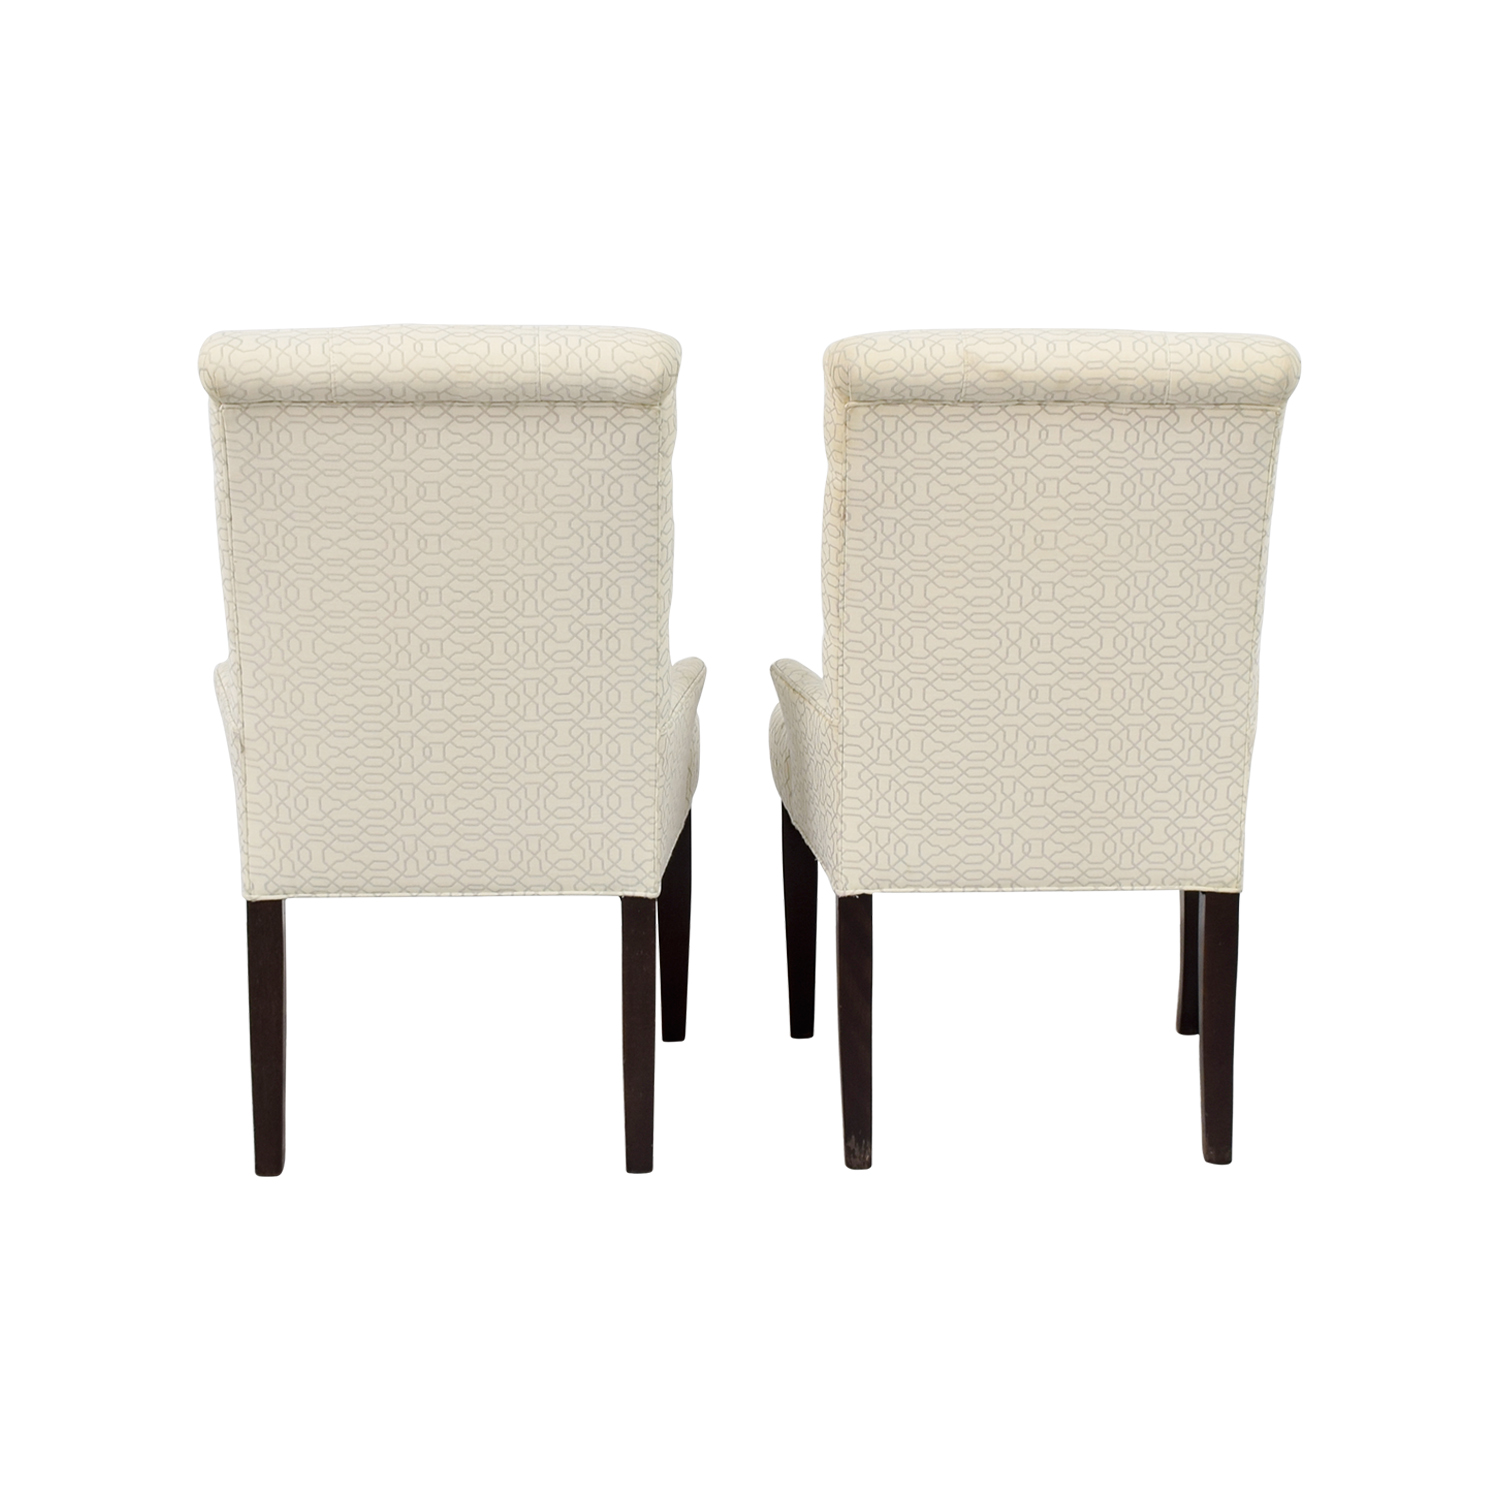 Ethan Allen Ethan Allen Jaqueline White Accent Chair nj